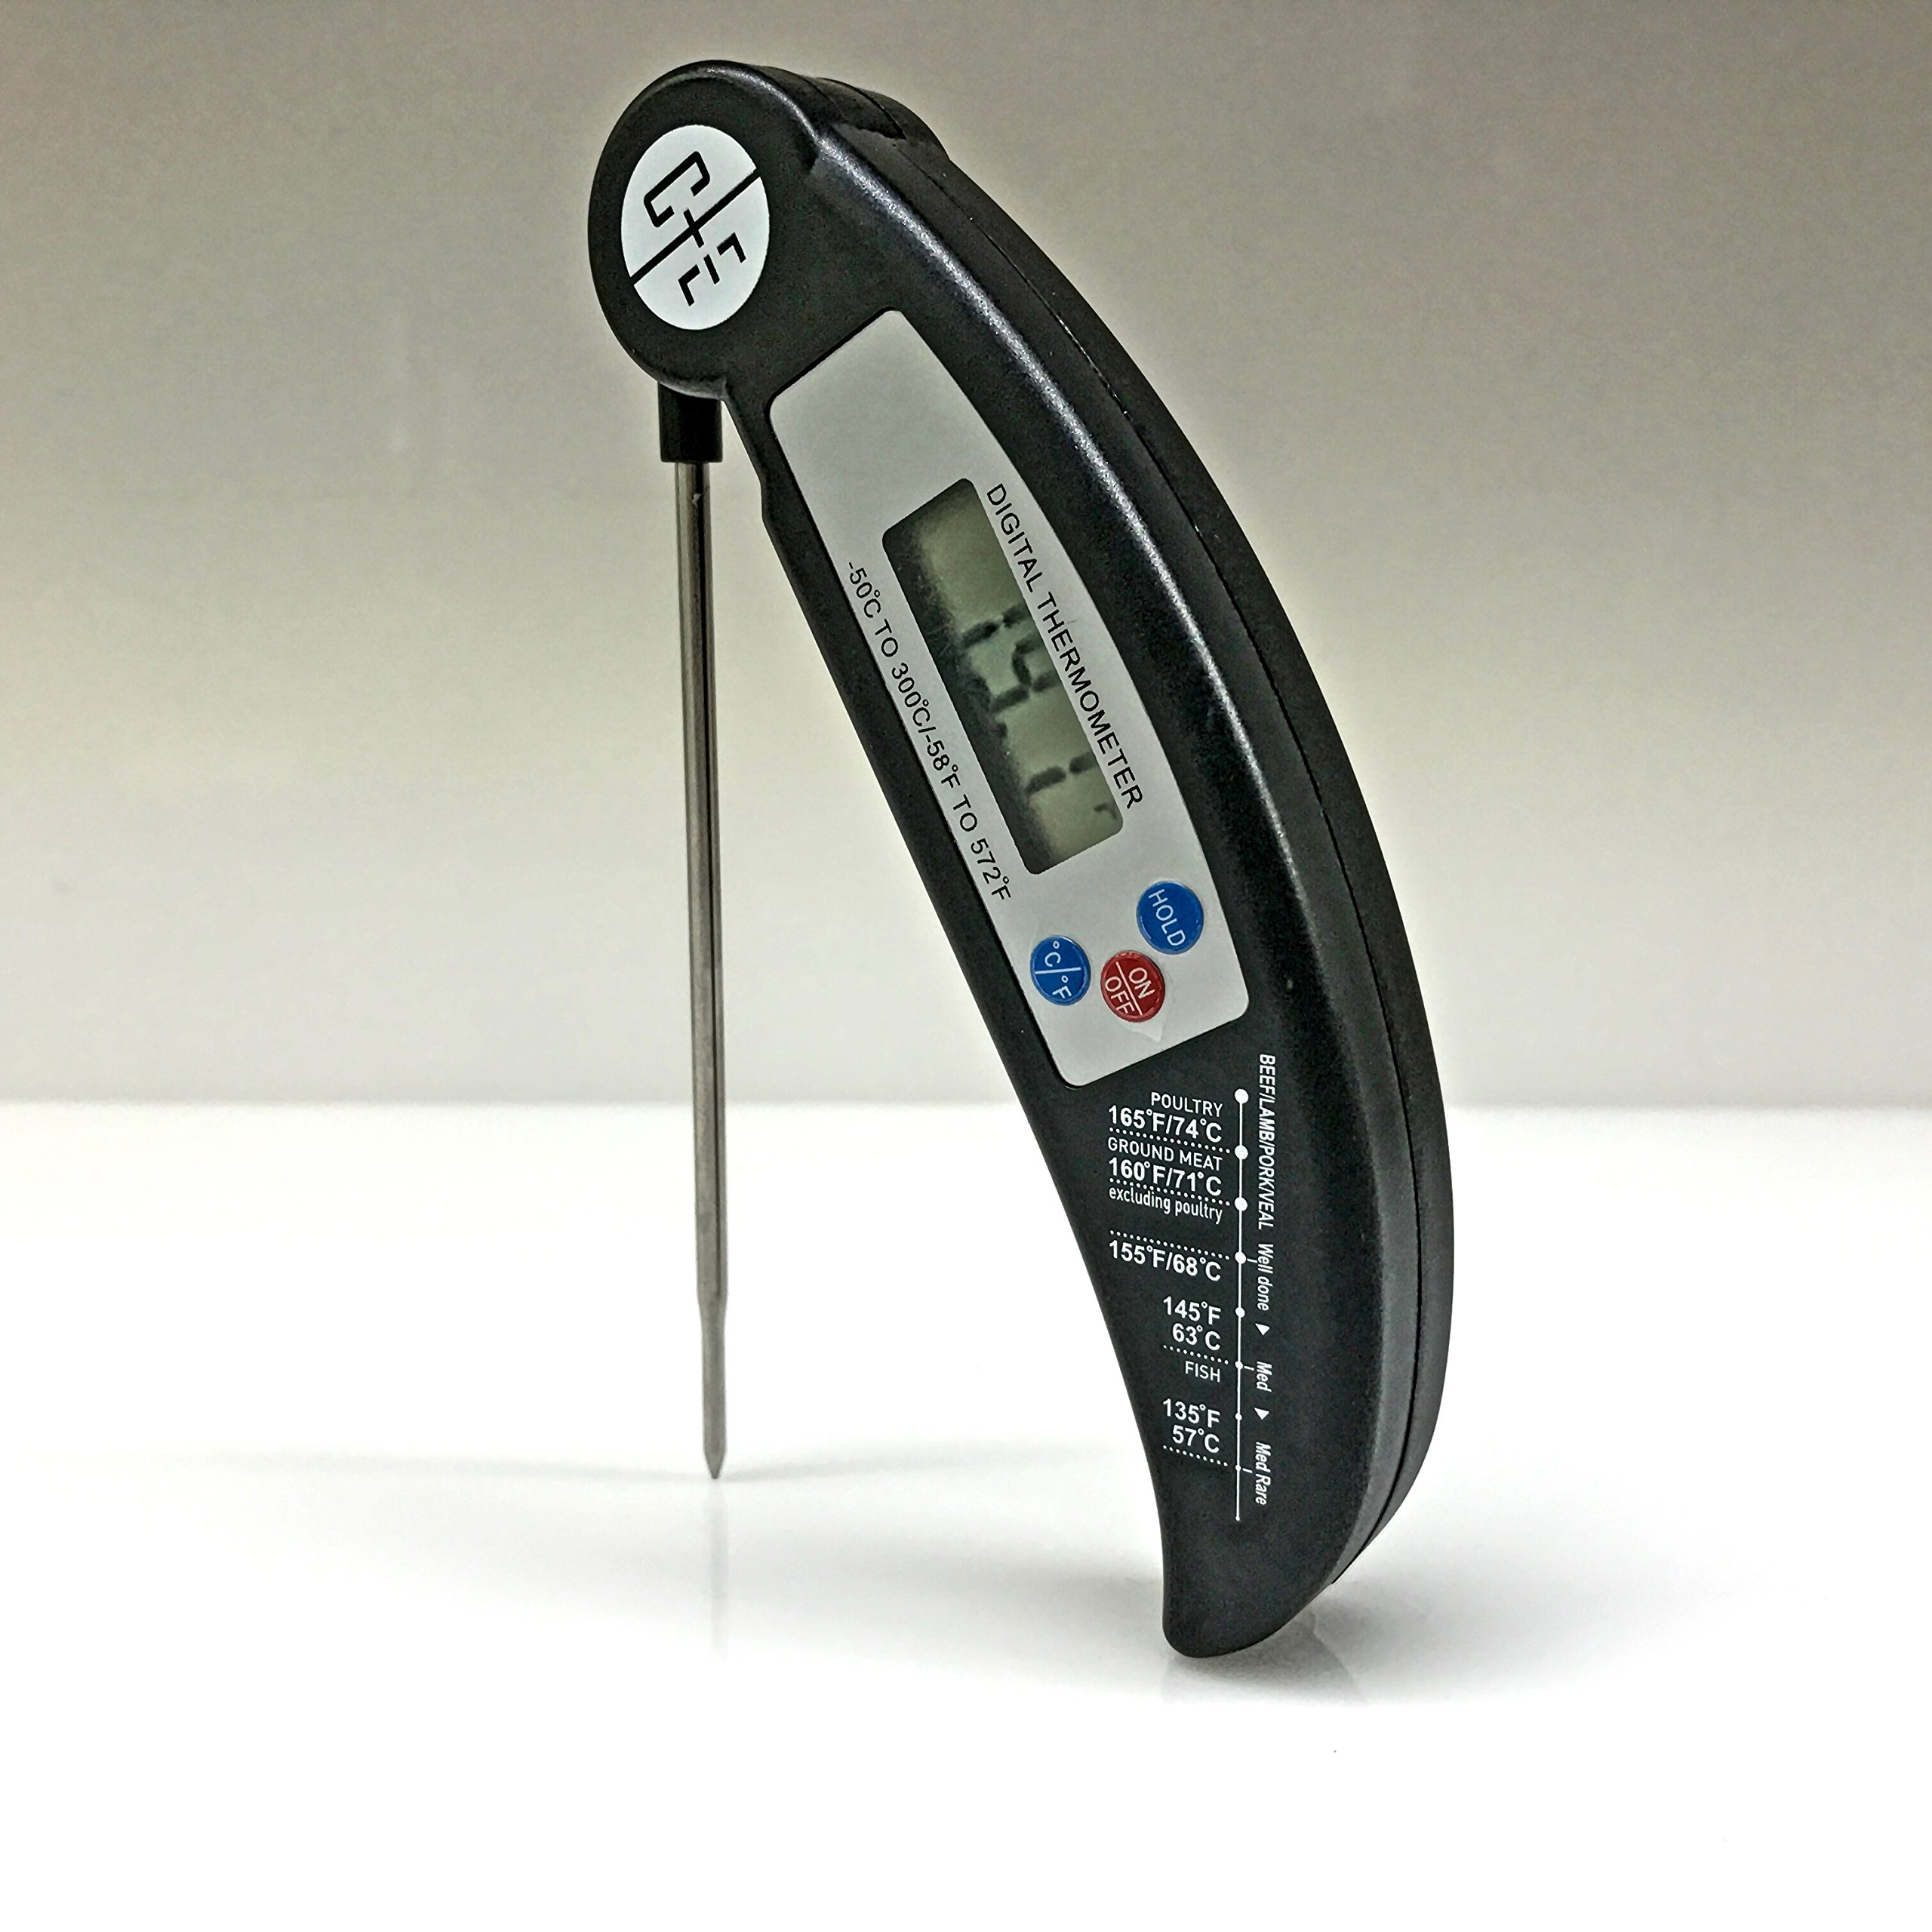 C+E Instant Read Digital Cooking Thermometer, Perfect Meat Thermometer for Grill/BBQ, Stainless Steel Collapsible Probe